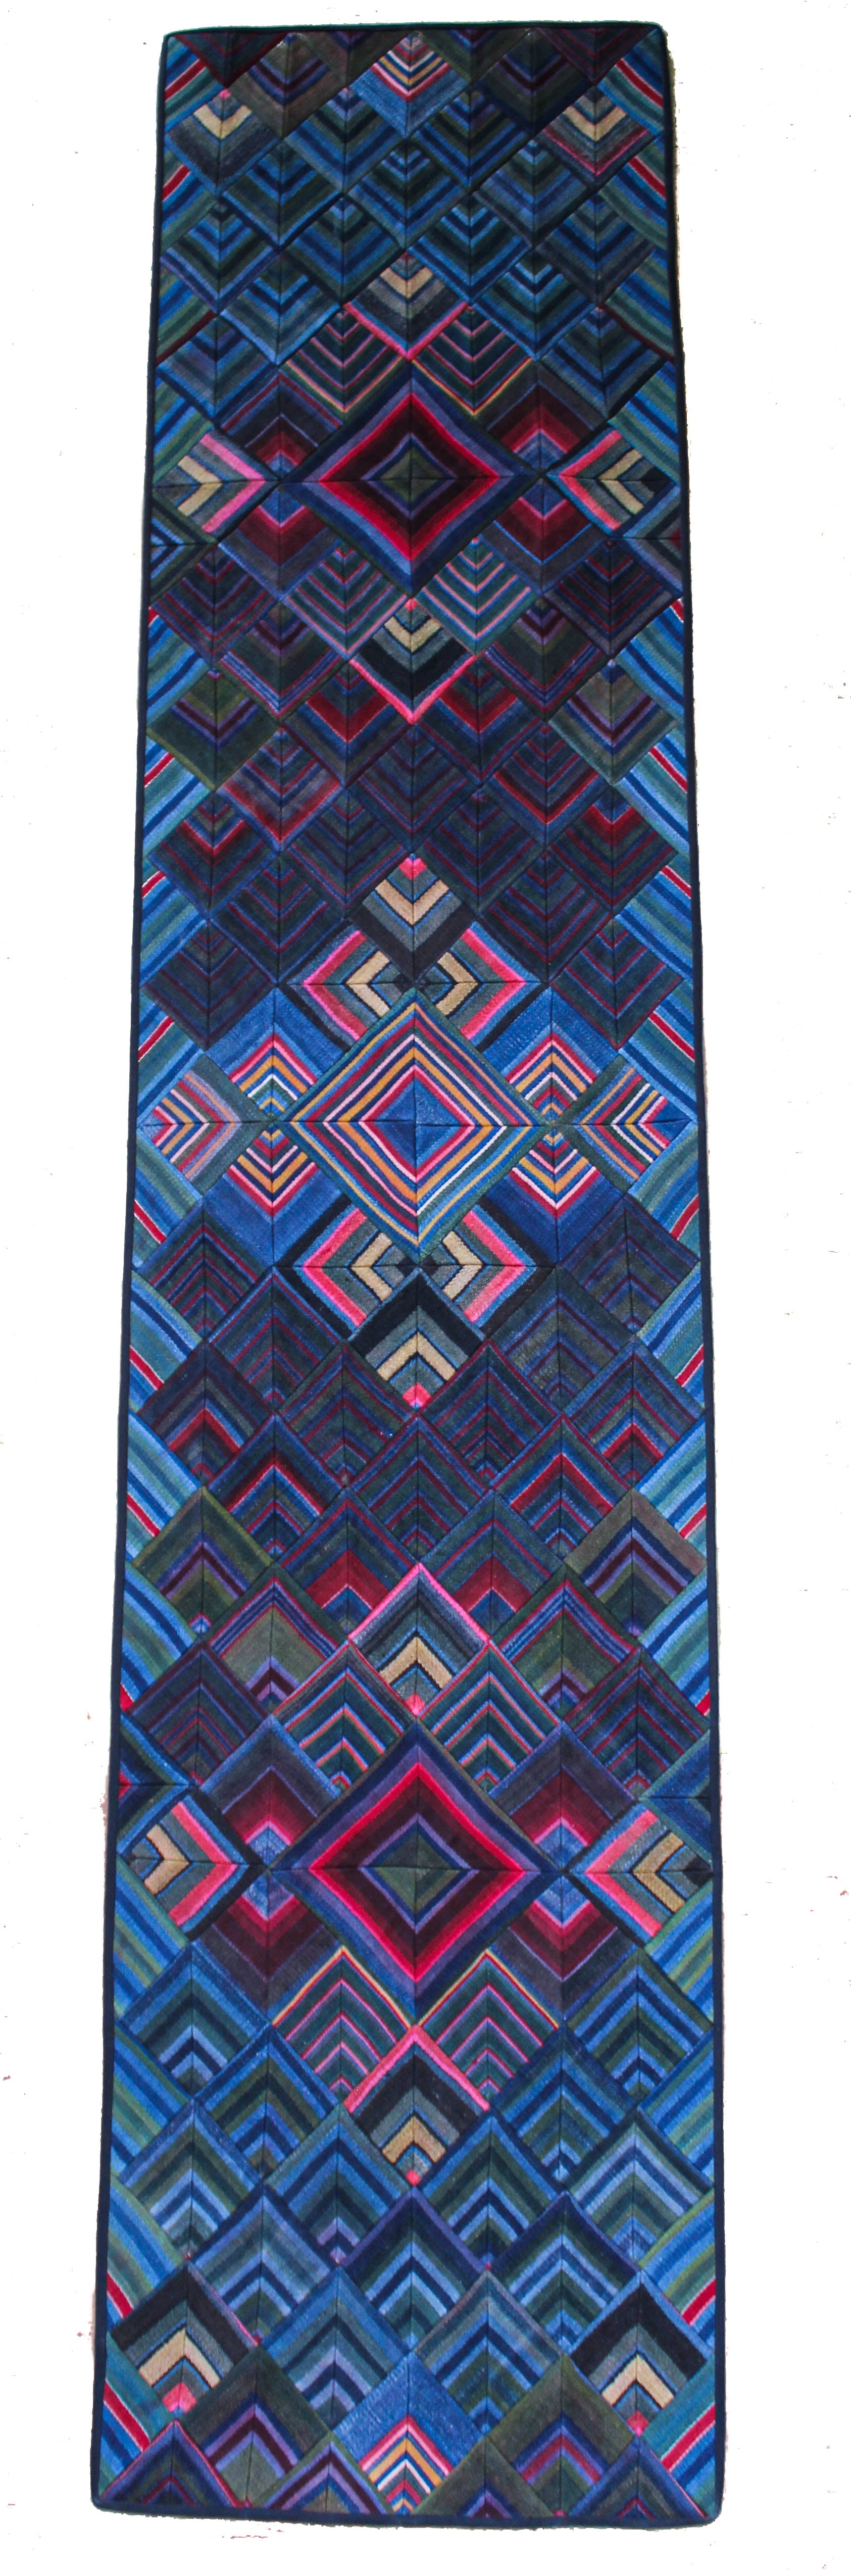 'Double Dorje Tapestry', Tibetan Wall-Hanging Art